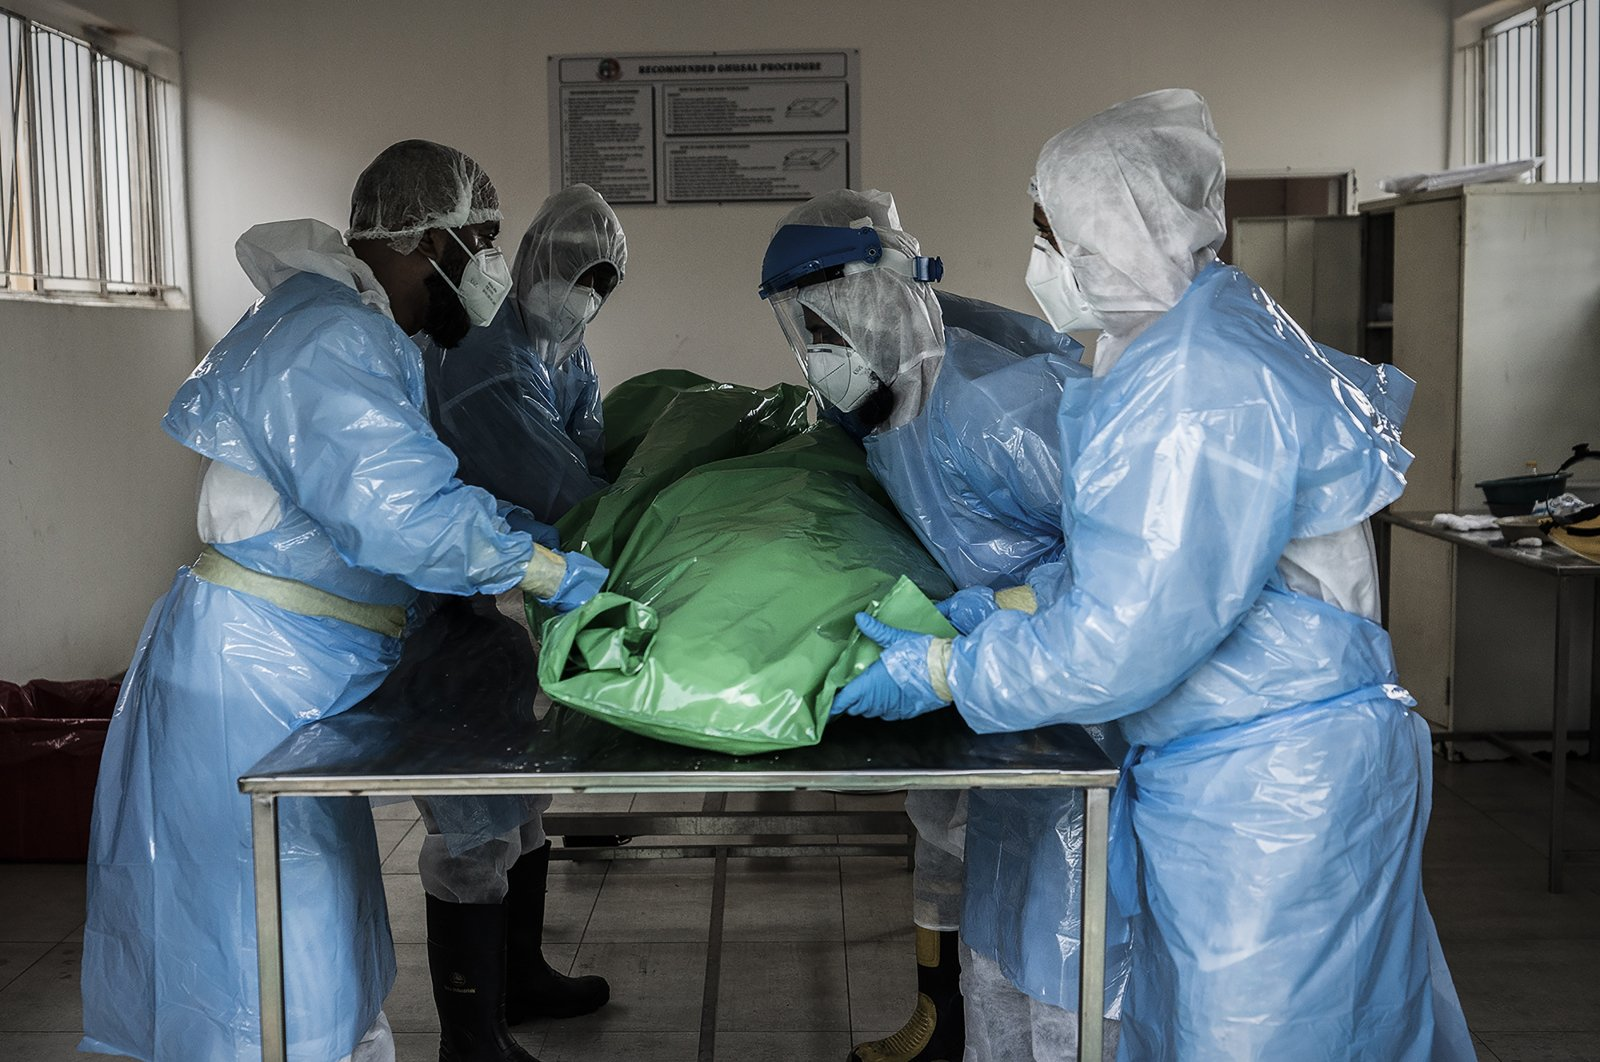 Members of the Saaberie Chishty Burial Society prepare the body of a person who died from COVID-19 at the Avalon Cemetery in Lenasia, Johannesburg Saturday Dec. 26, 2020. (AP Photo)